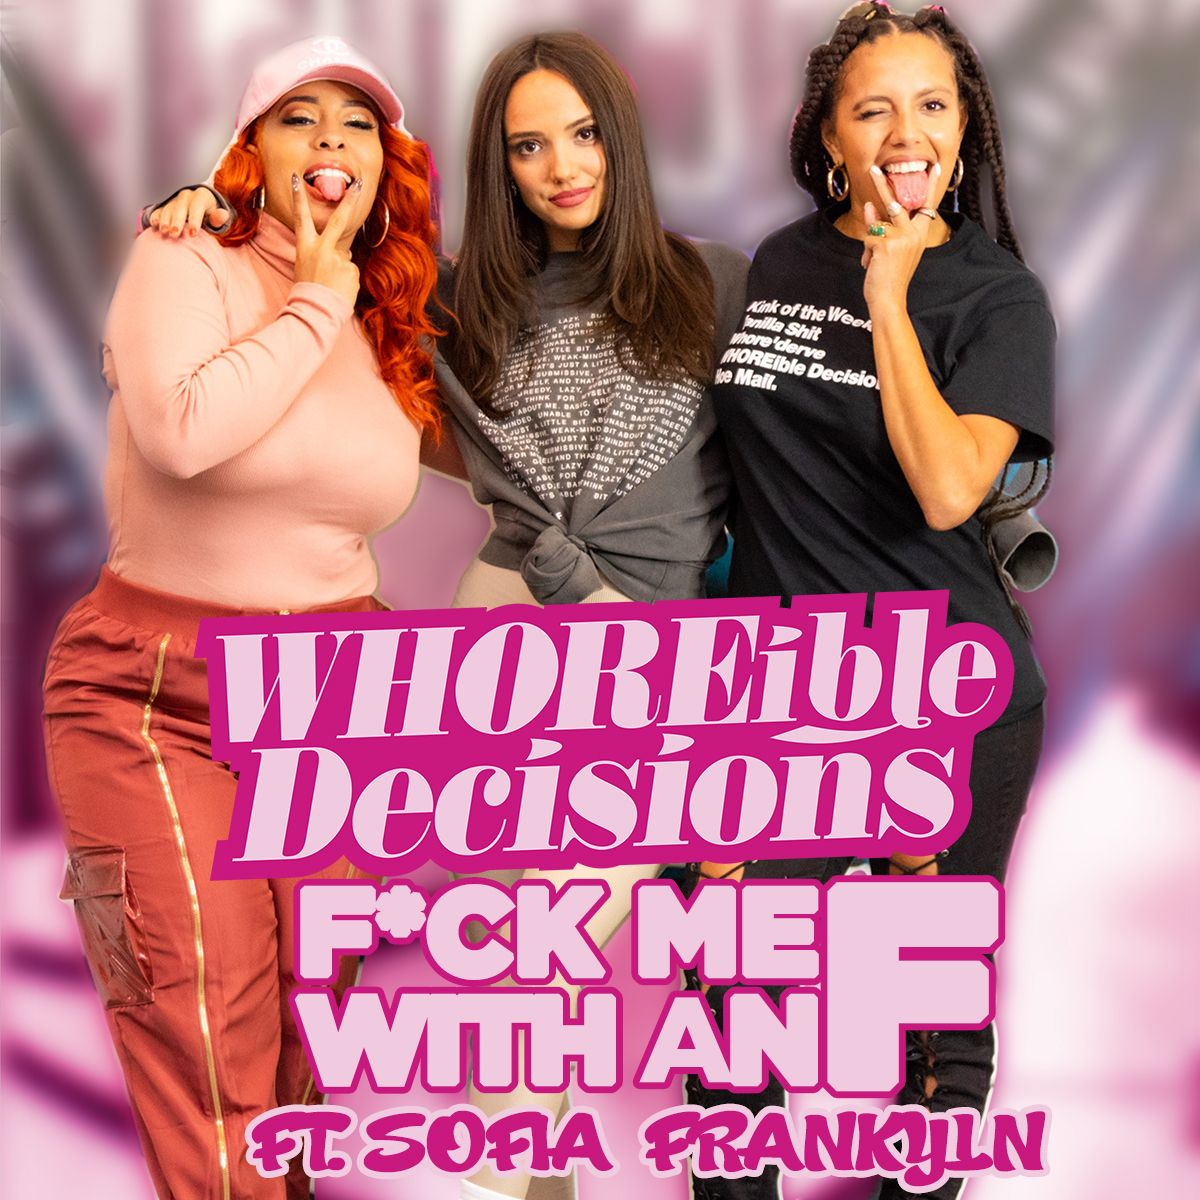 Ep195: F**k Me with an F (Ft. Sofia Franklyn)